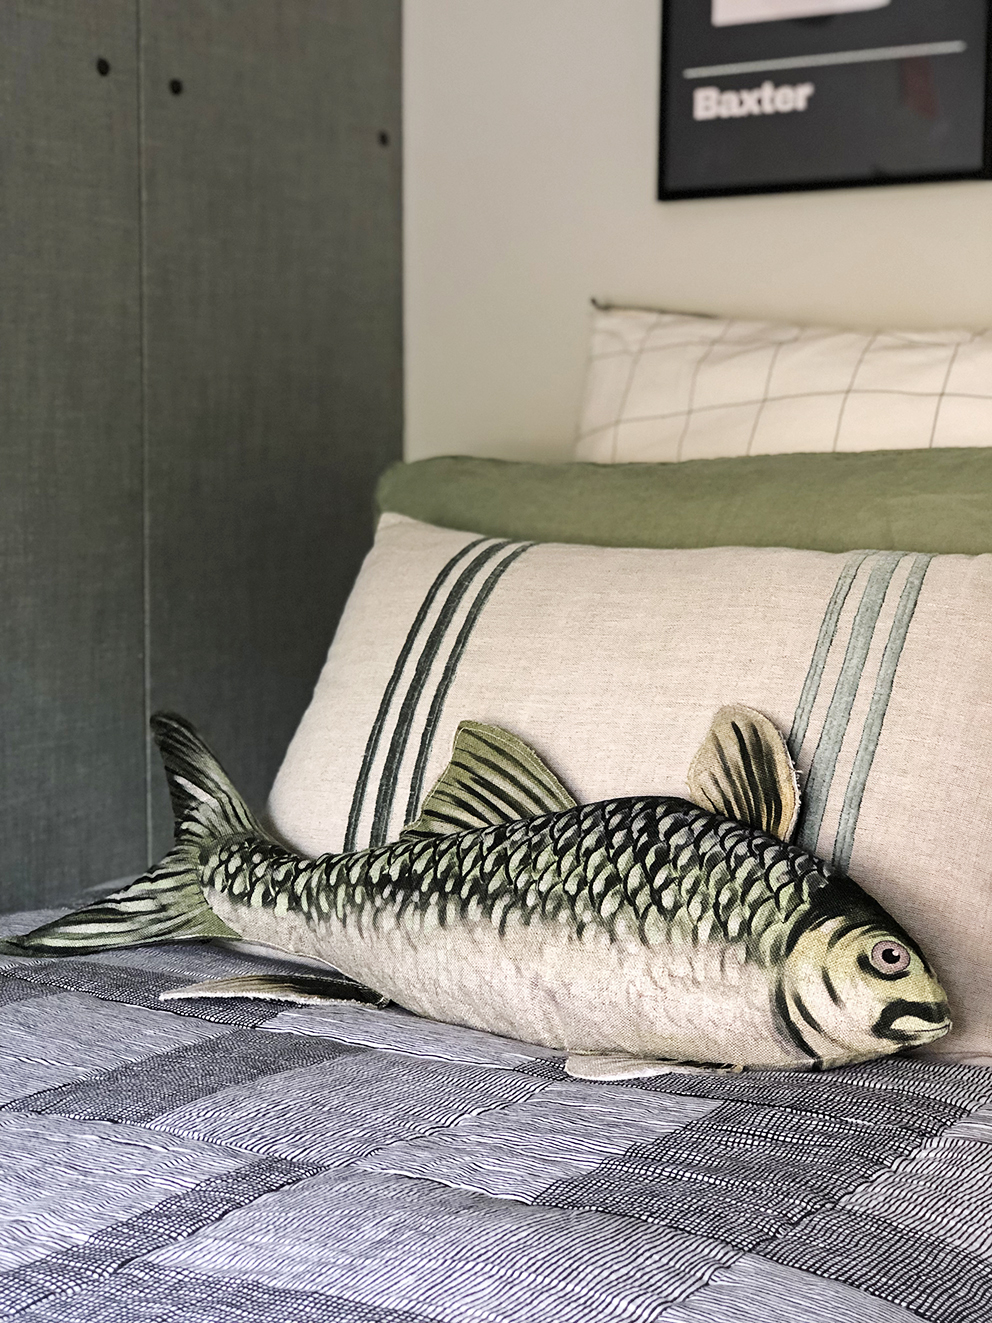 BedFishDetail.jpg